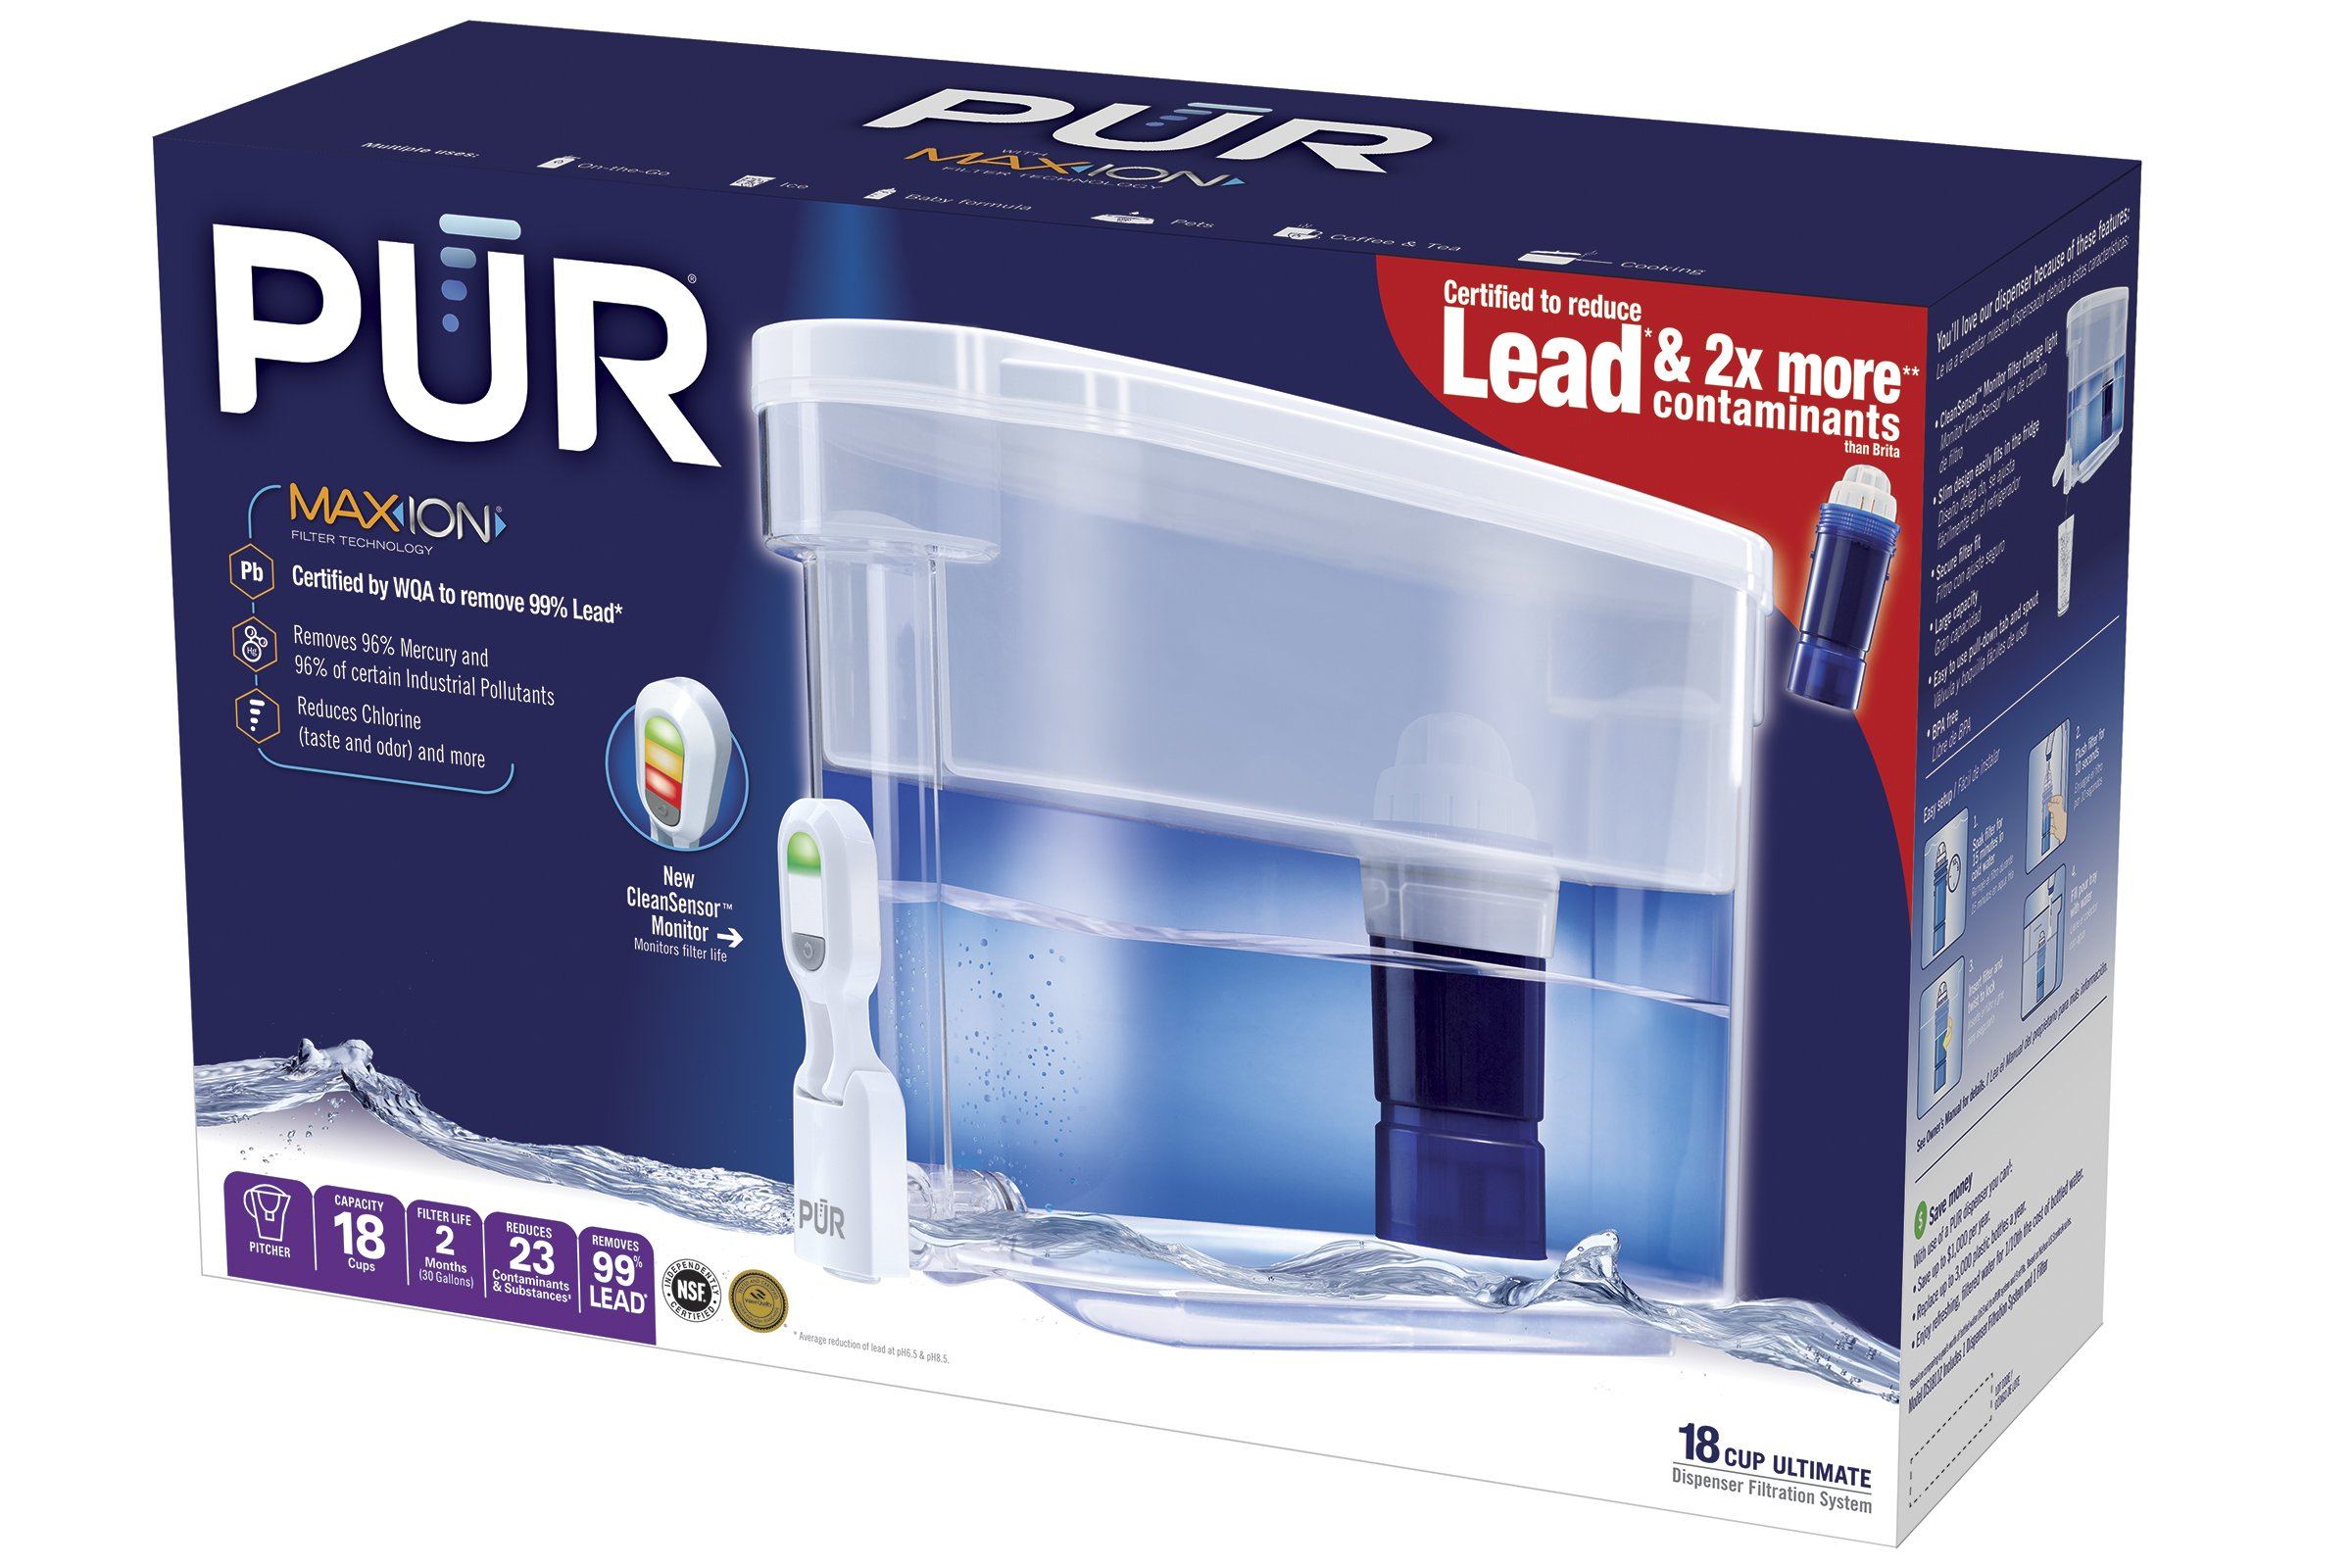 PUR Ultimate Water Dispenser w/LED & Lead Reduction Filter, White, DS1811Z - WQA Certified to Remove 99% of Lead, Filters Up to 30 Gallons/2 Months of Water by PUR (Image #2)